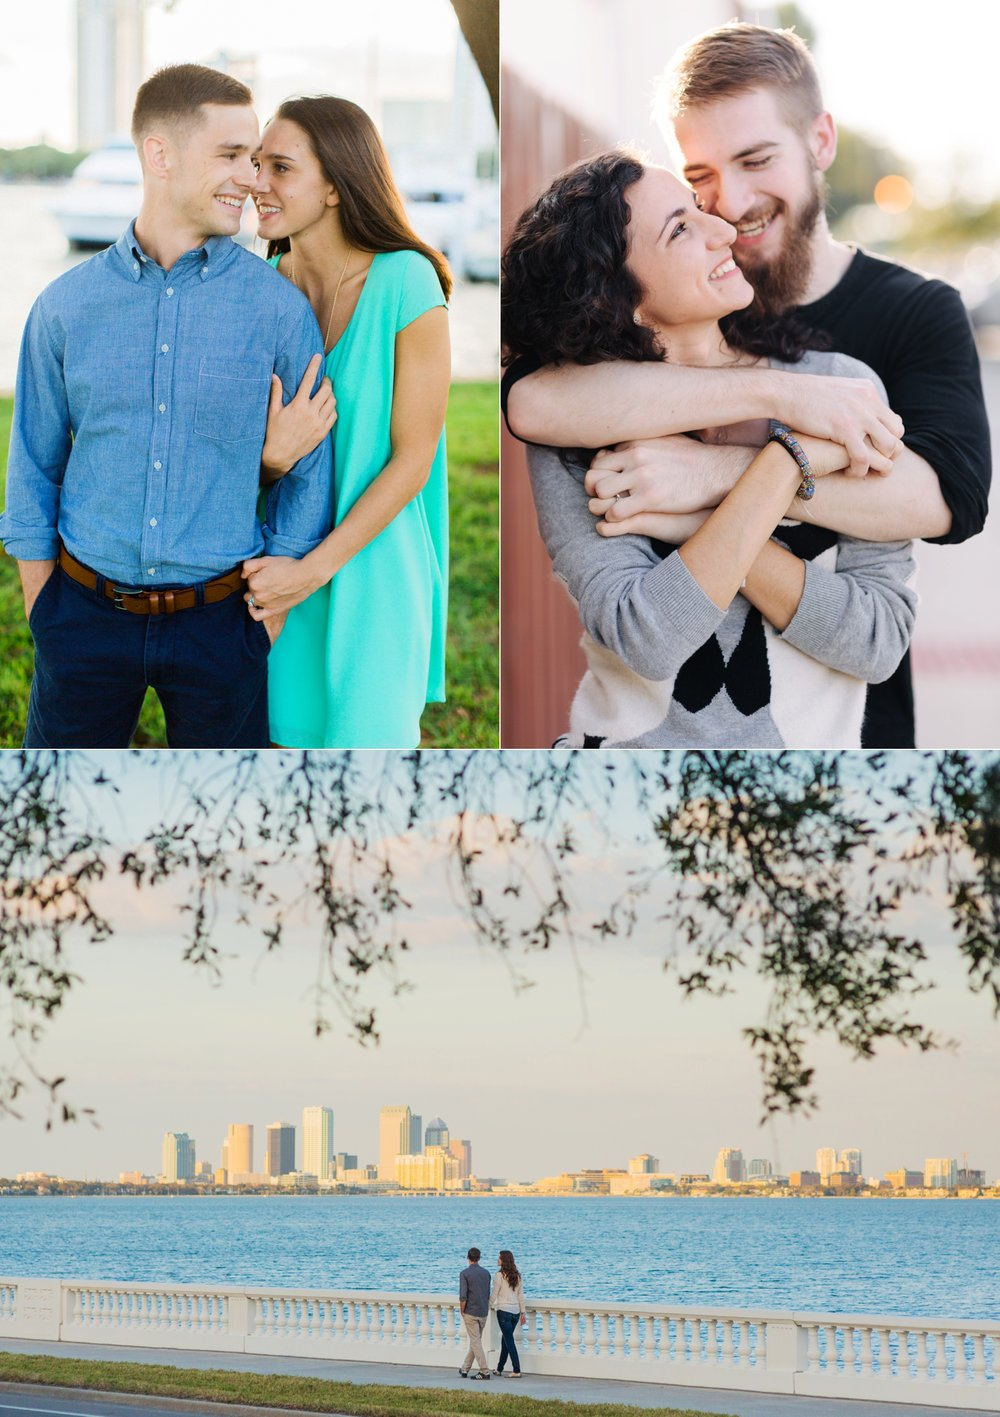 Jake & Katie Photography Best of Couples 2016-015.jpg